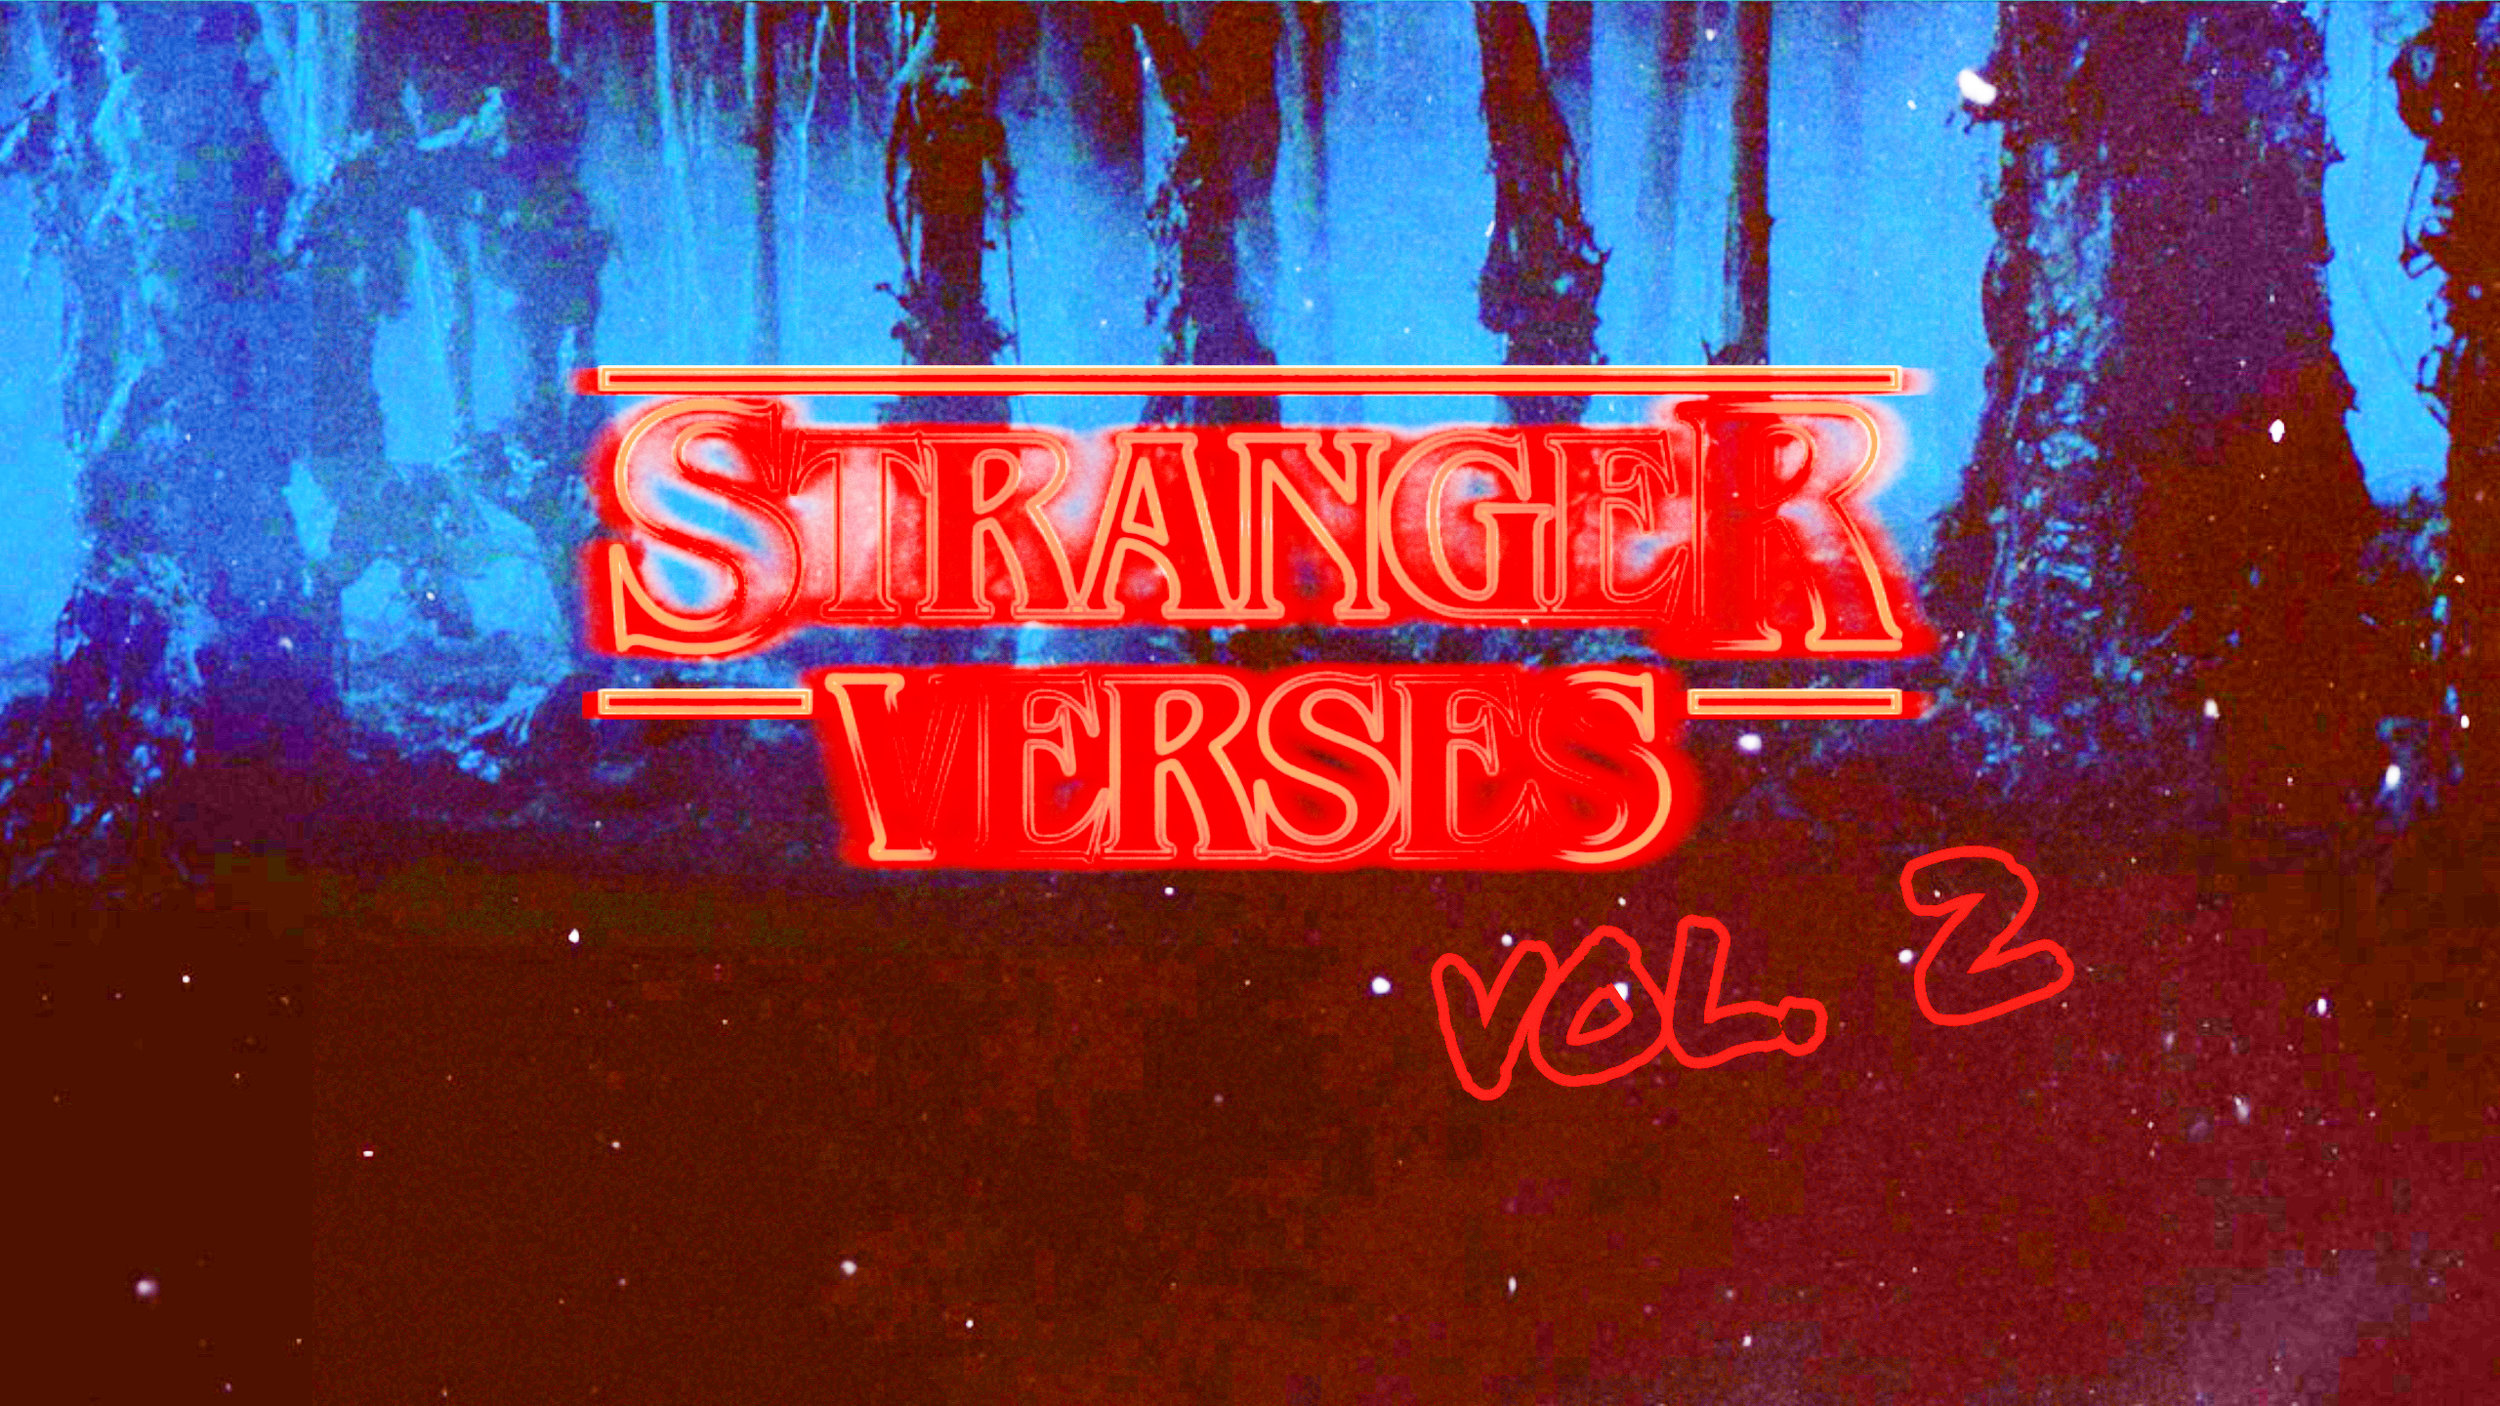 Stranger Verses Vol 2 edit.jpg